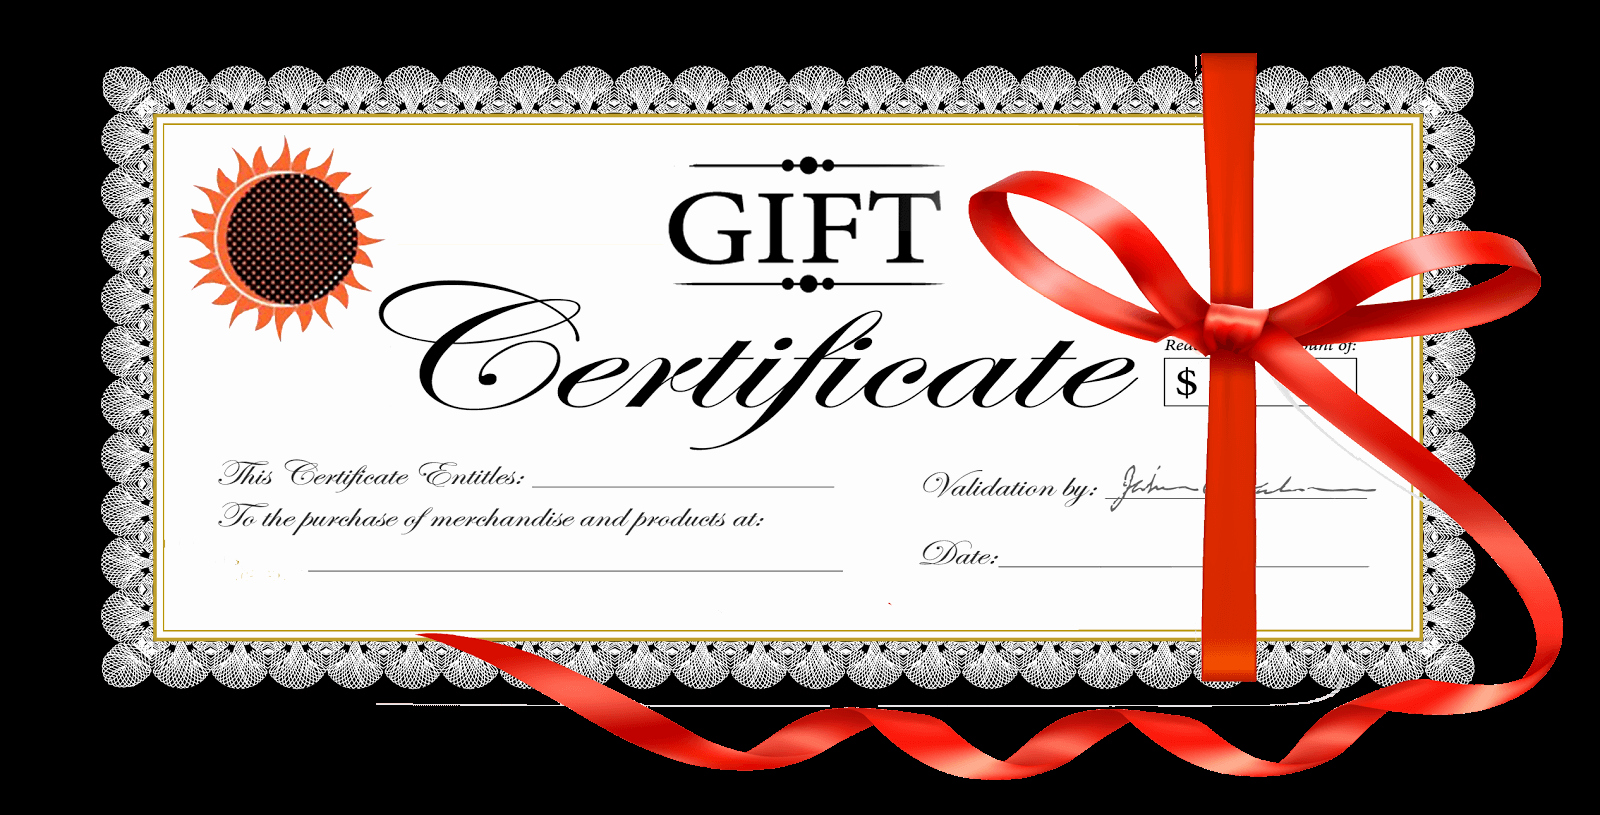 Making Gift Certificates Online Free New 60th Birthday Gift Ideas – Your Party Starts Here